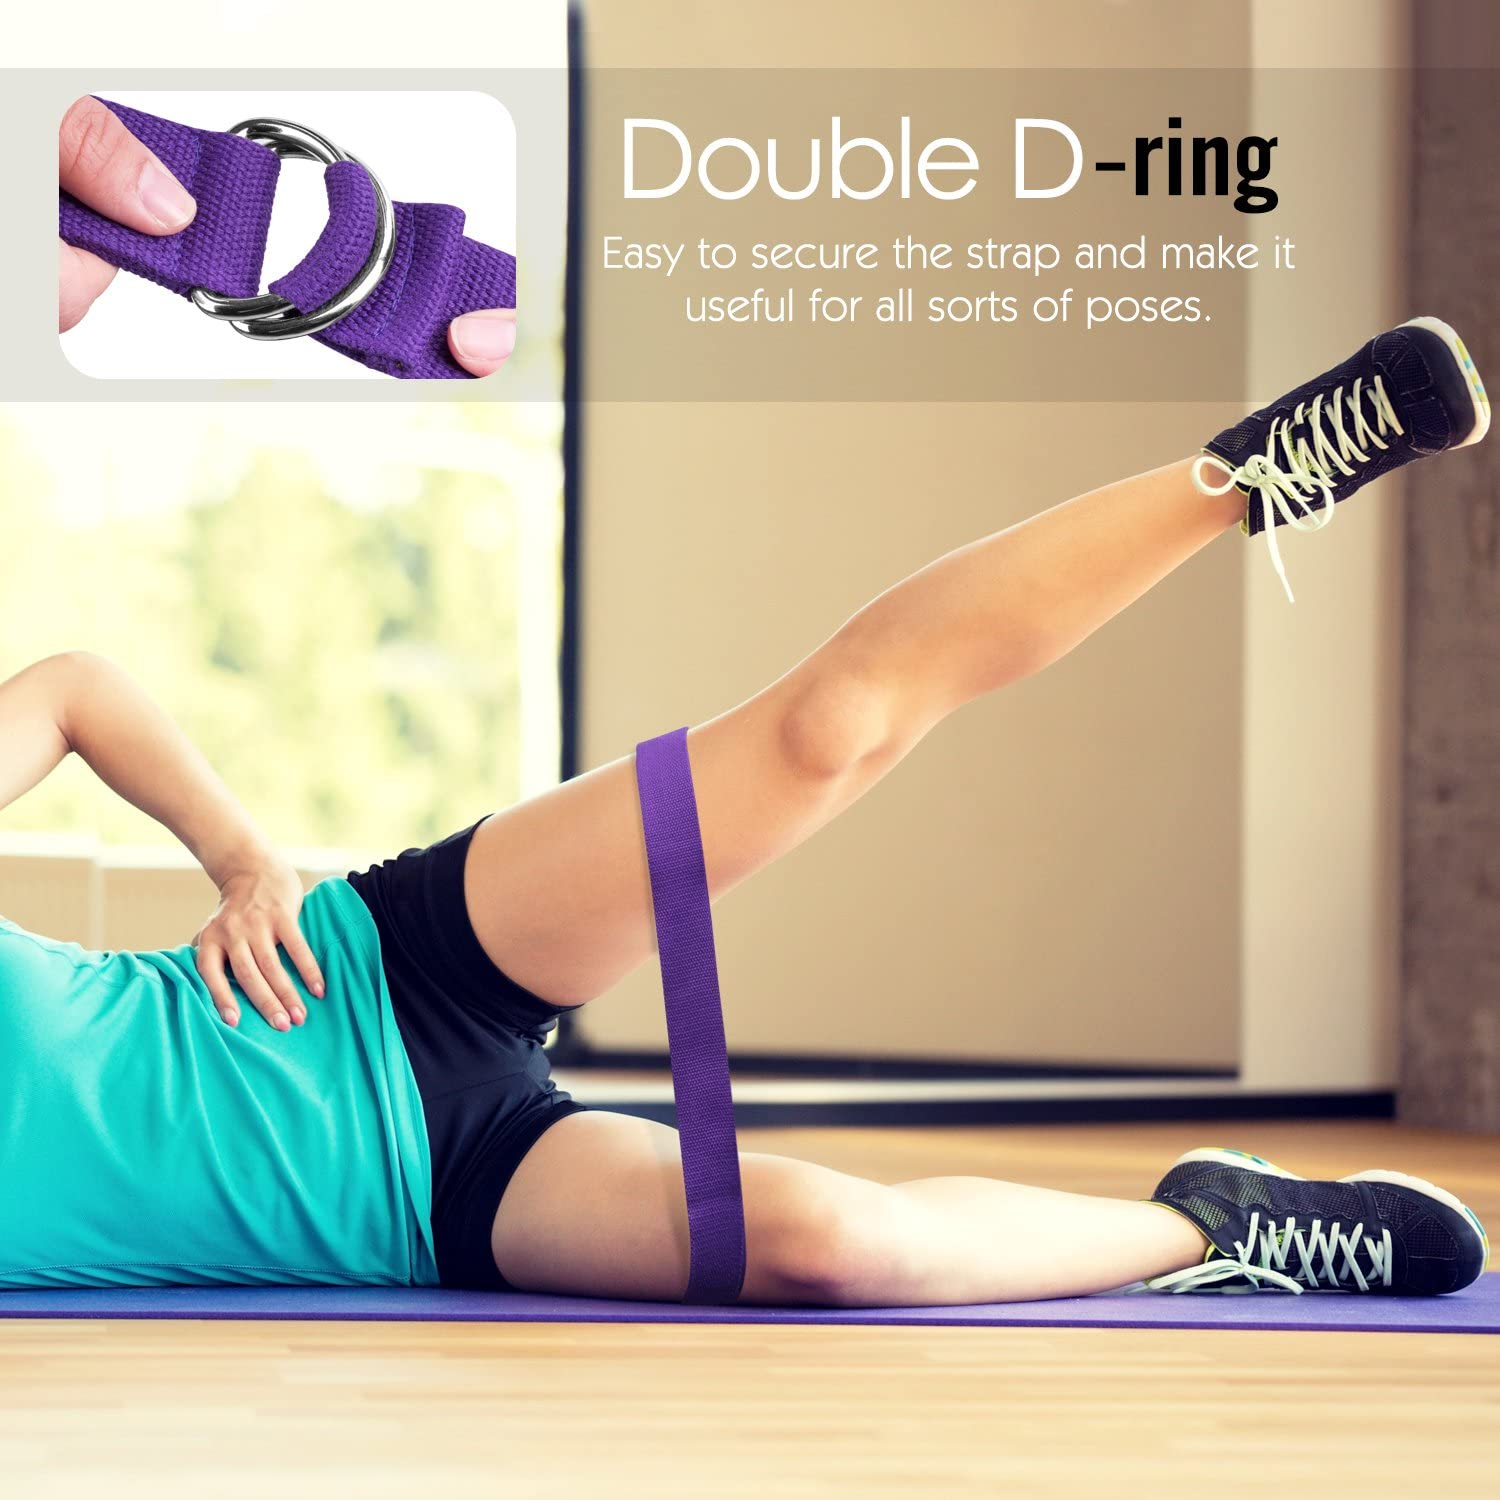 Pilates Stretching Exercise Fitness Bands Made with Durable Cotton Soft with Metal D-Ring Buckle MoKo Yoga Strap Belt 6ft 2 Pack Physical Therapy Best for Holding Poses Increase Flexibility